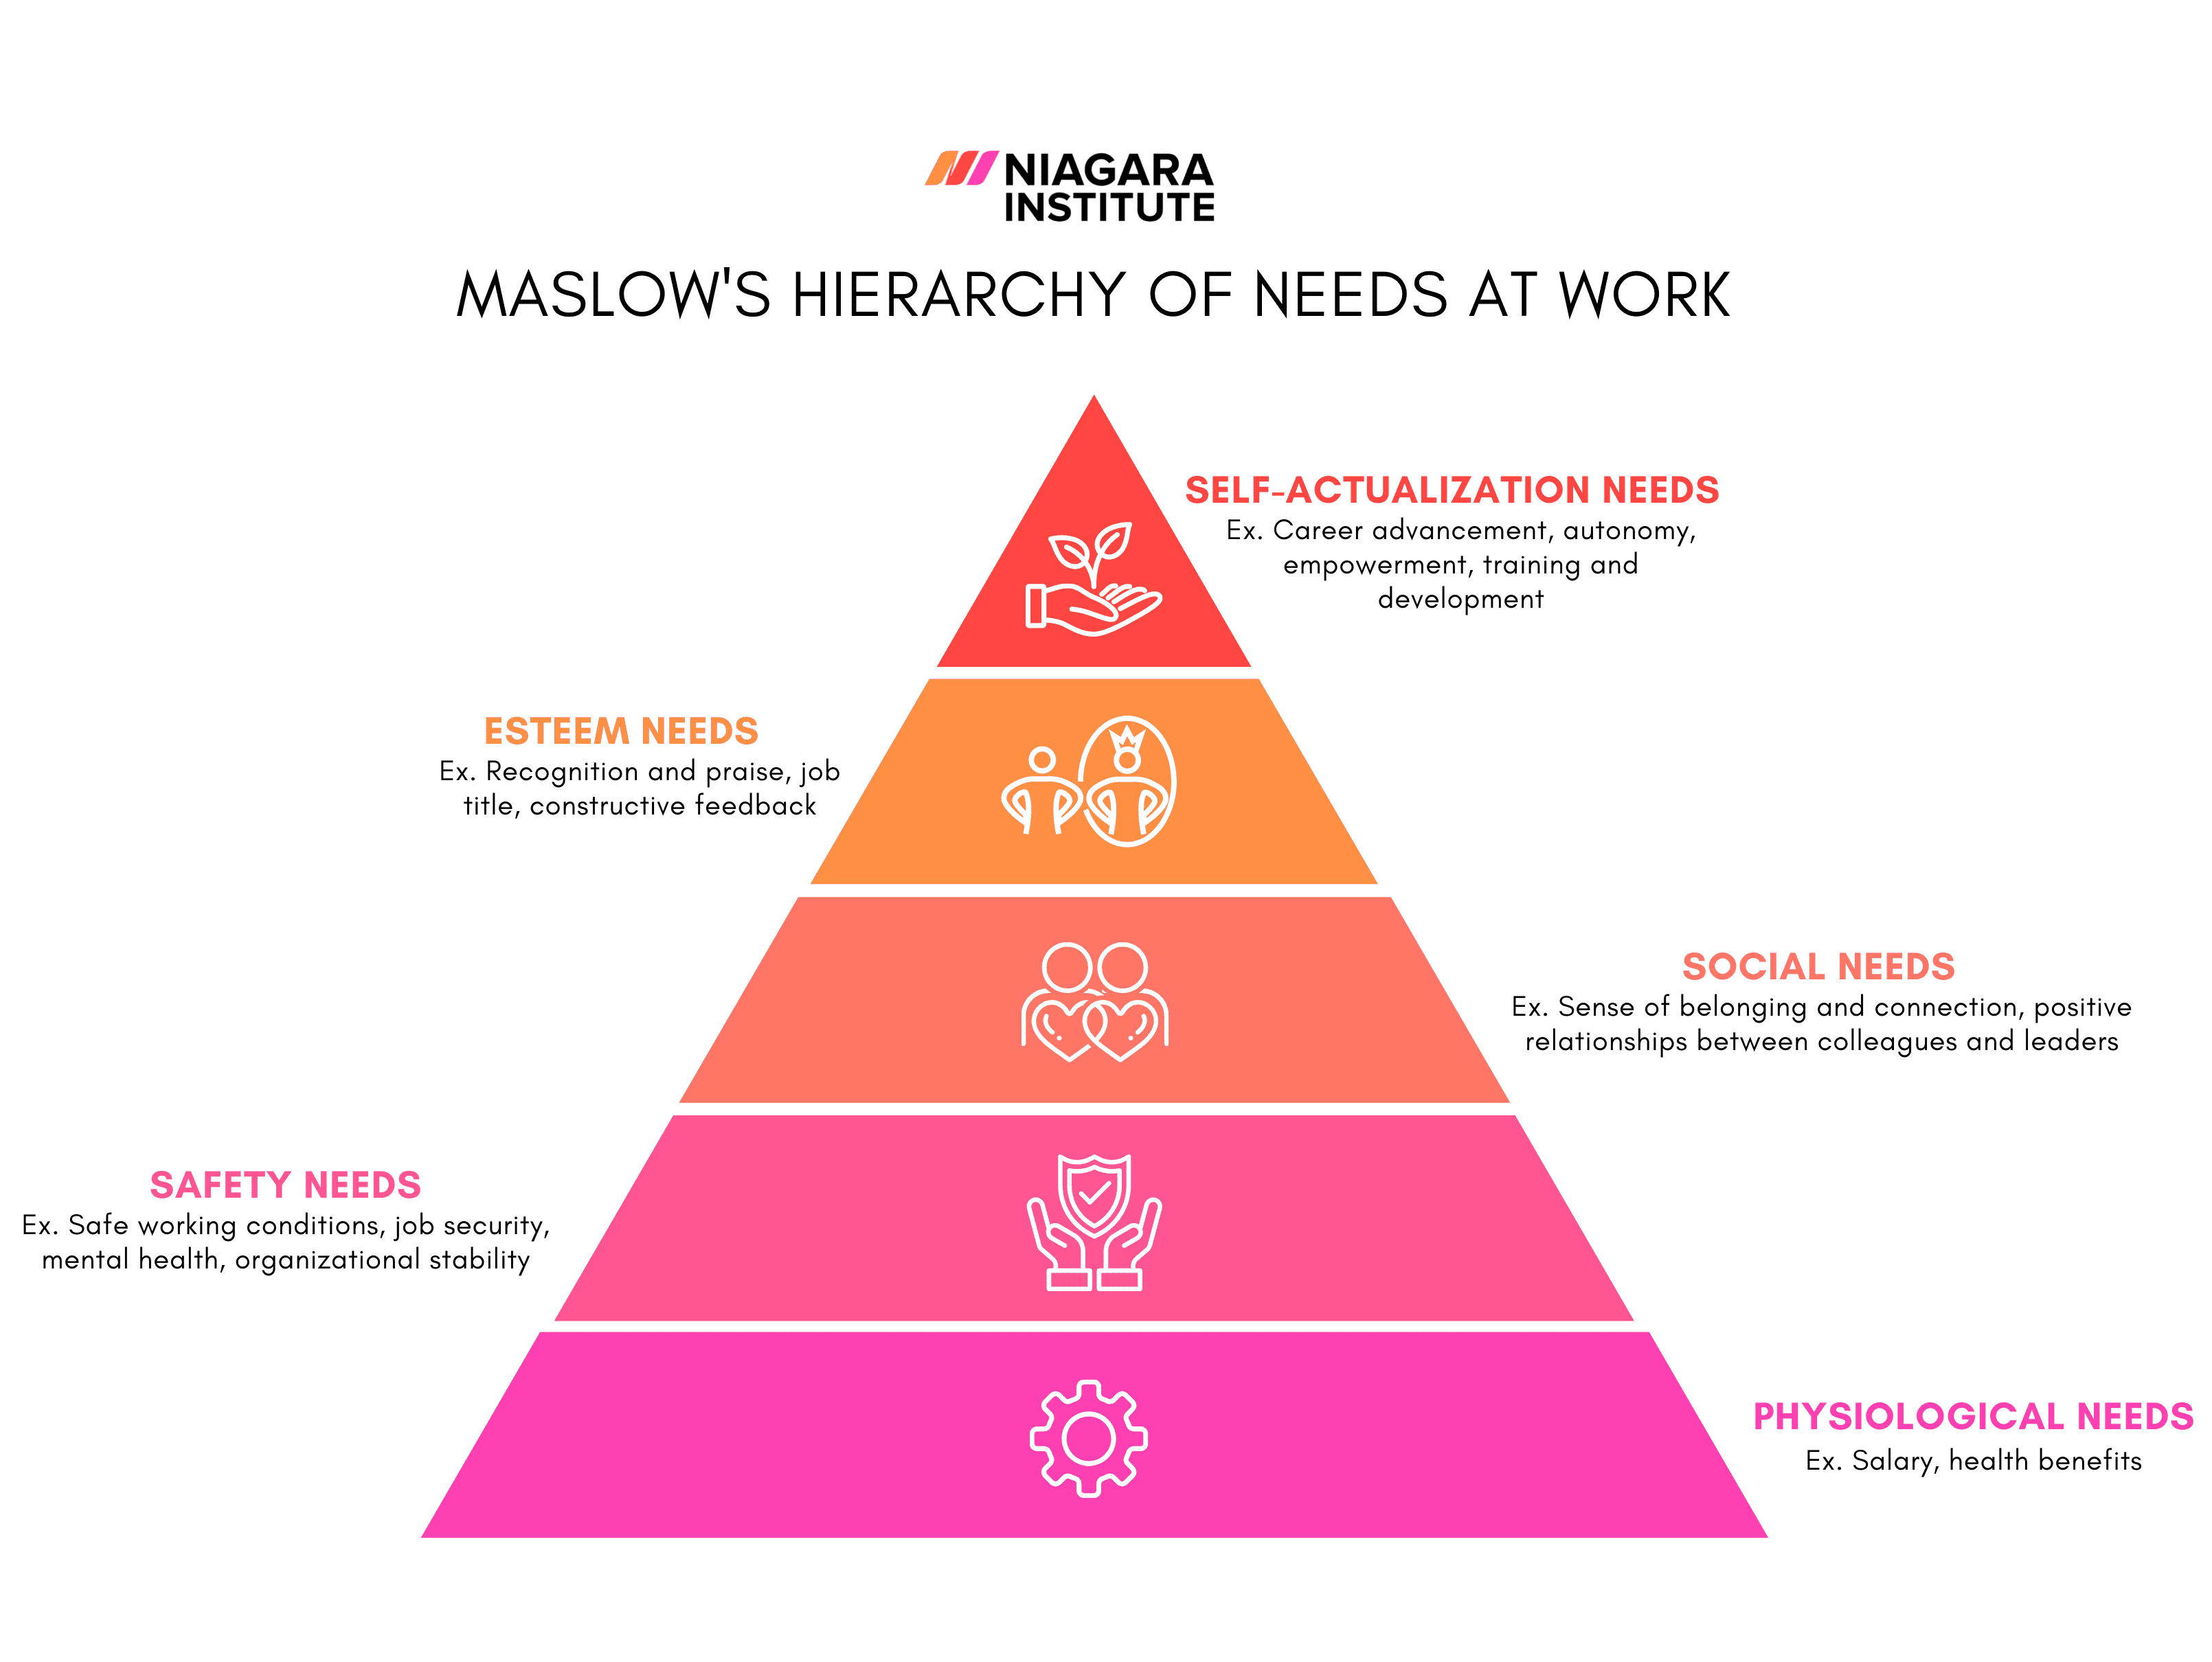 Maslow's Hierarchy of Needs at Work